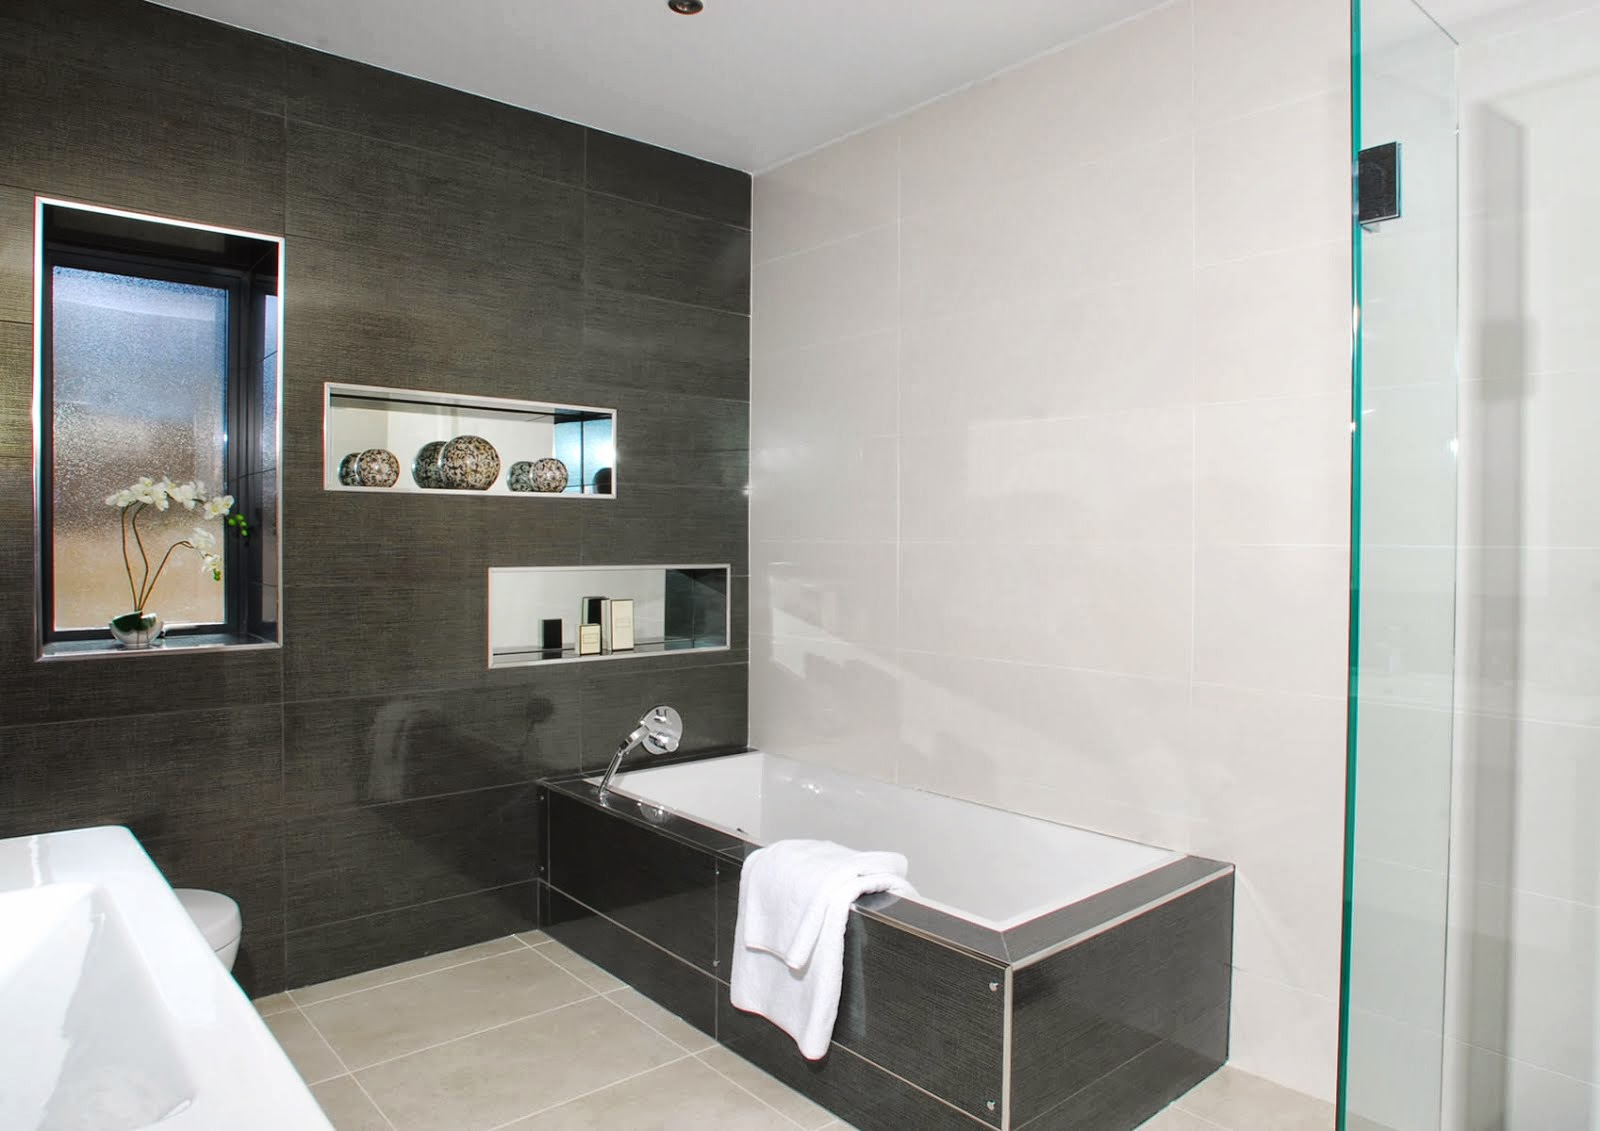 bathroom design ideas uk On bathroom designs and ideas